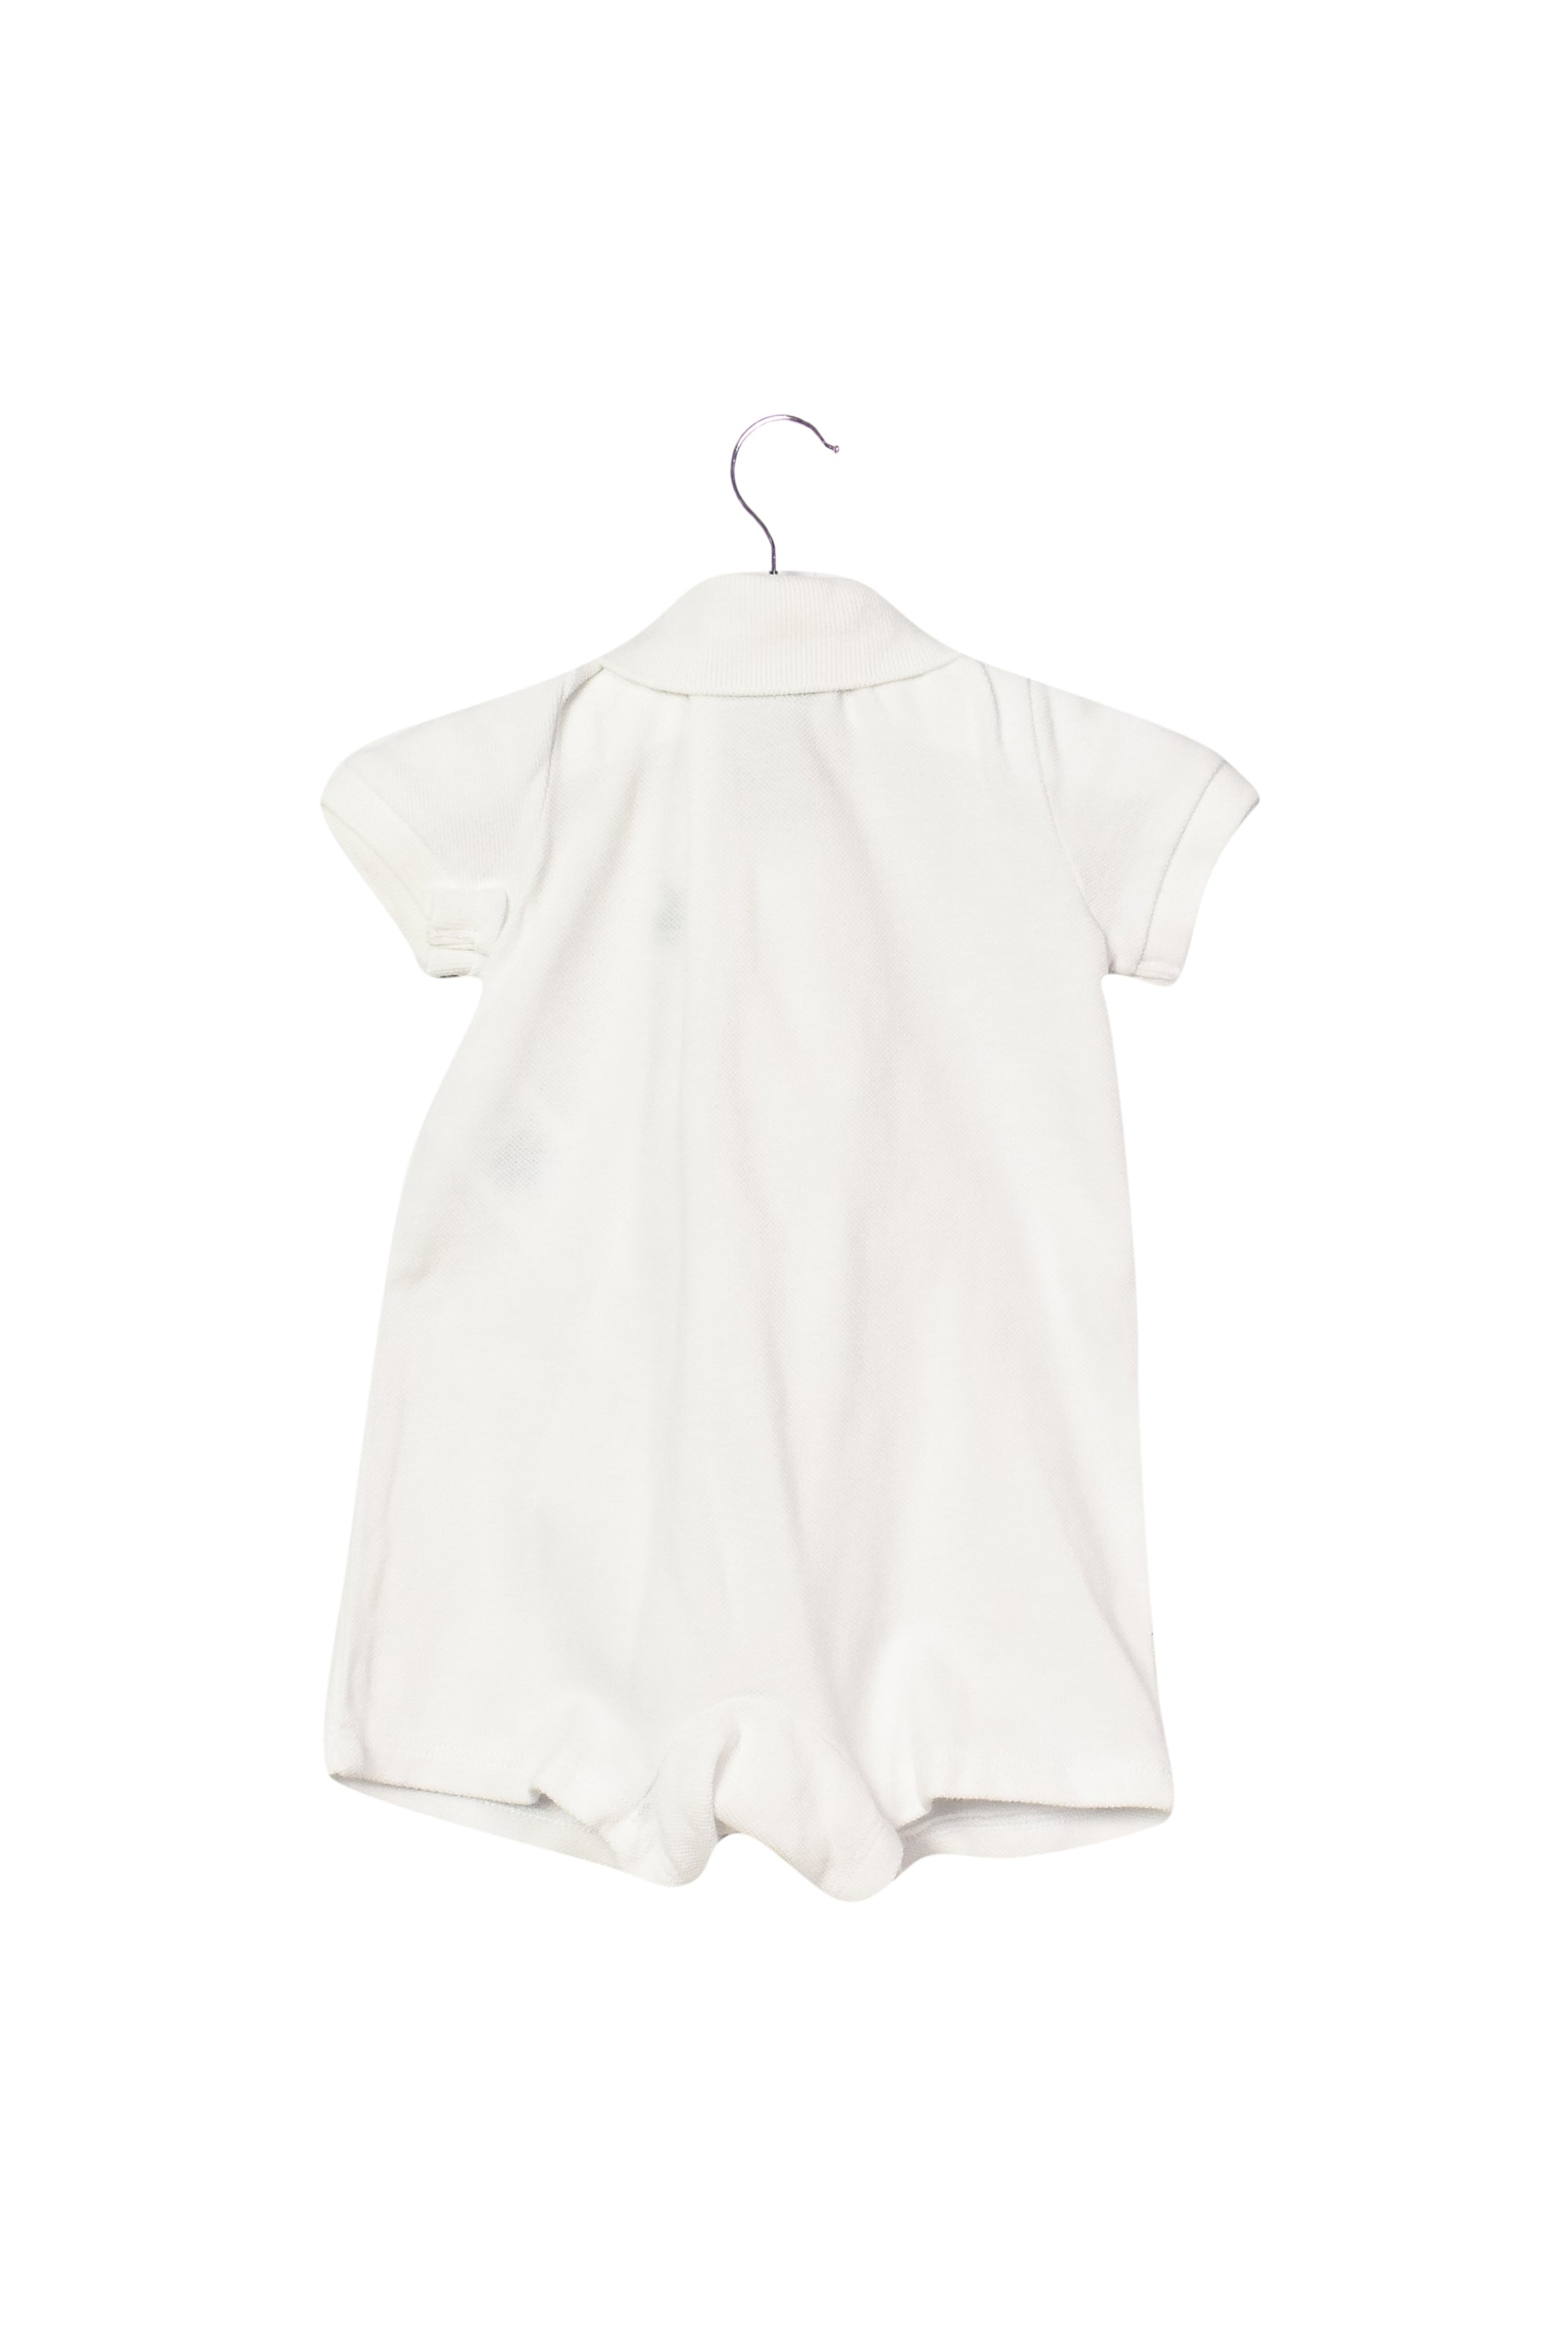 10040805 Ralph Lauren Baby~Romper 3M at Retykle